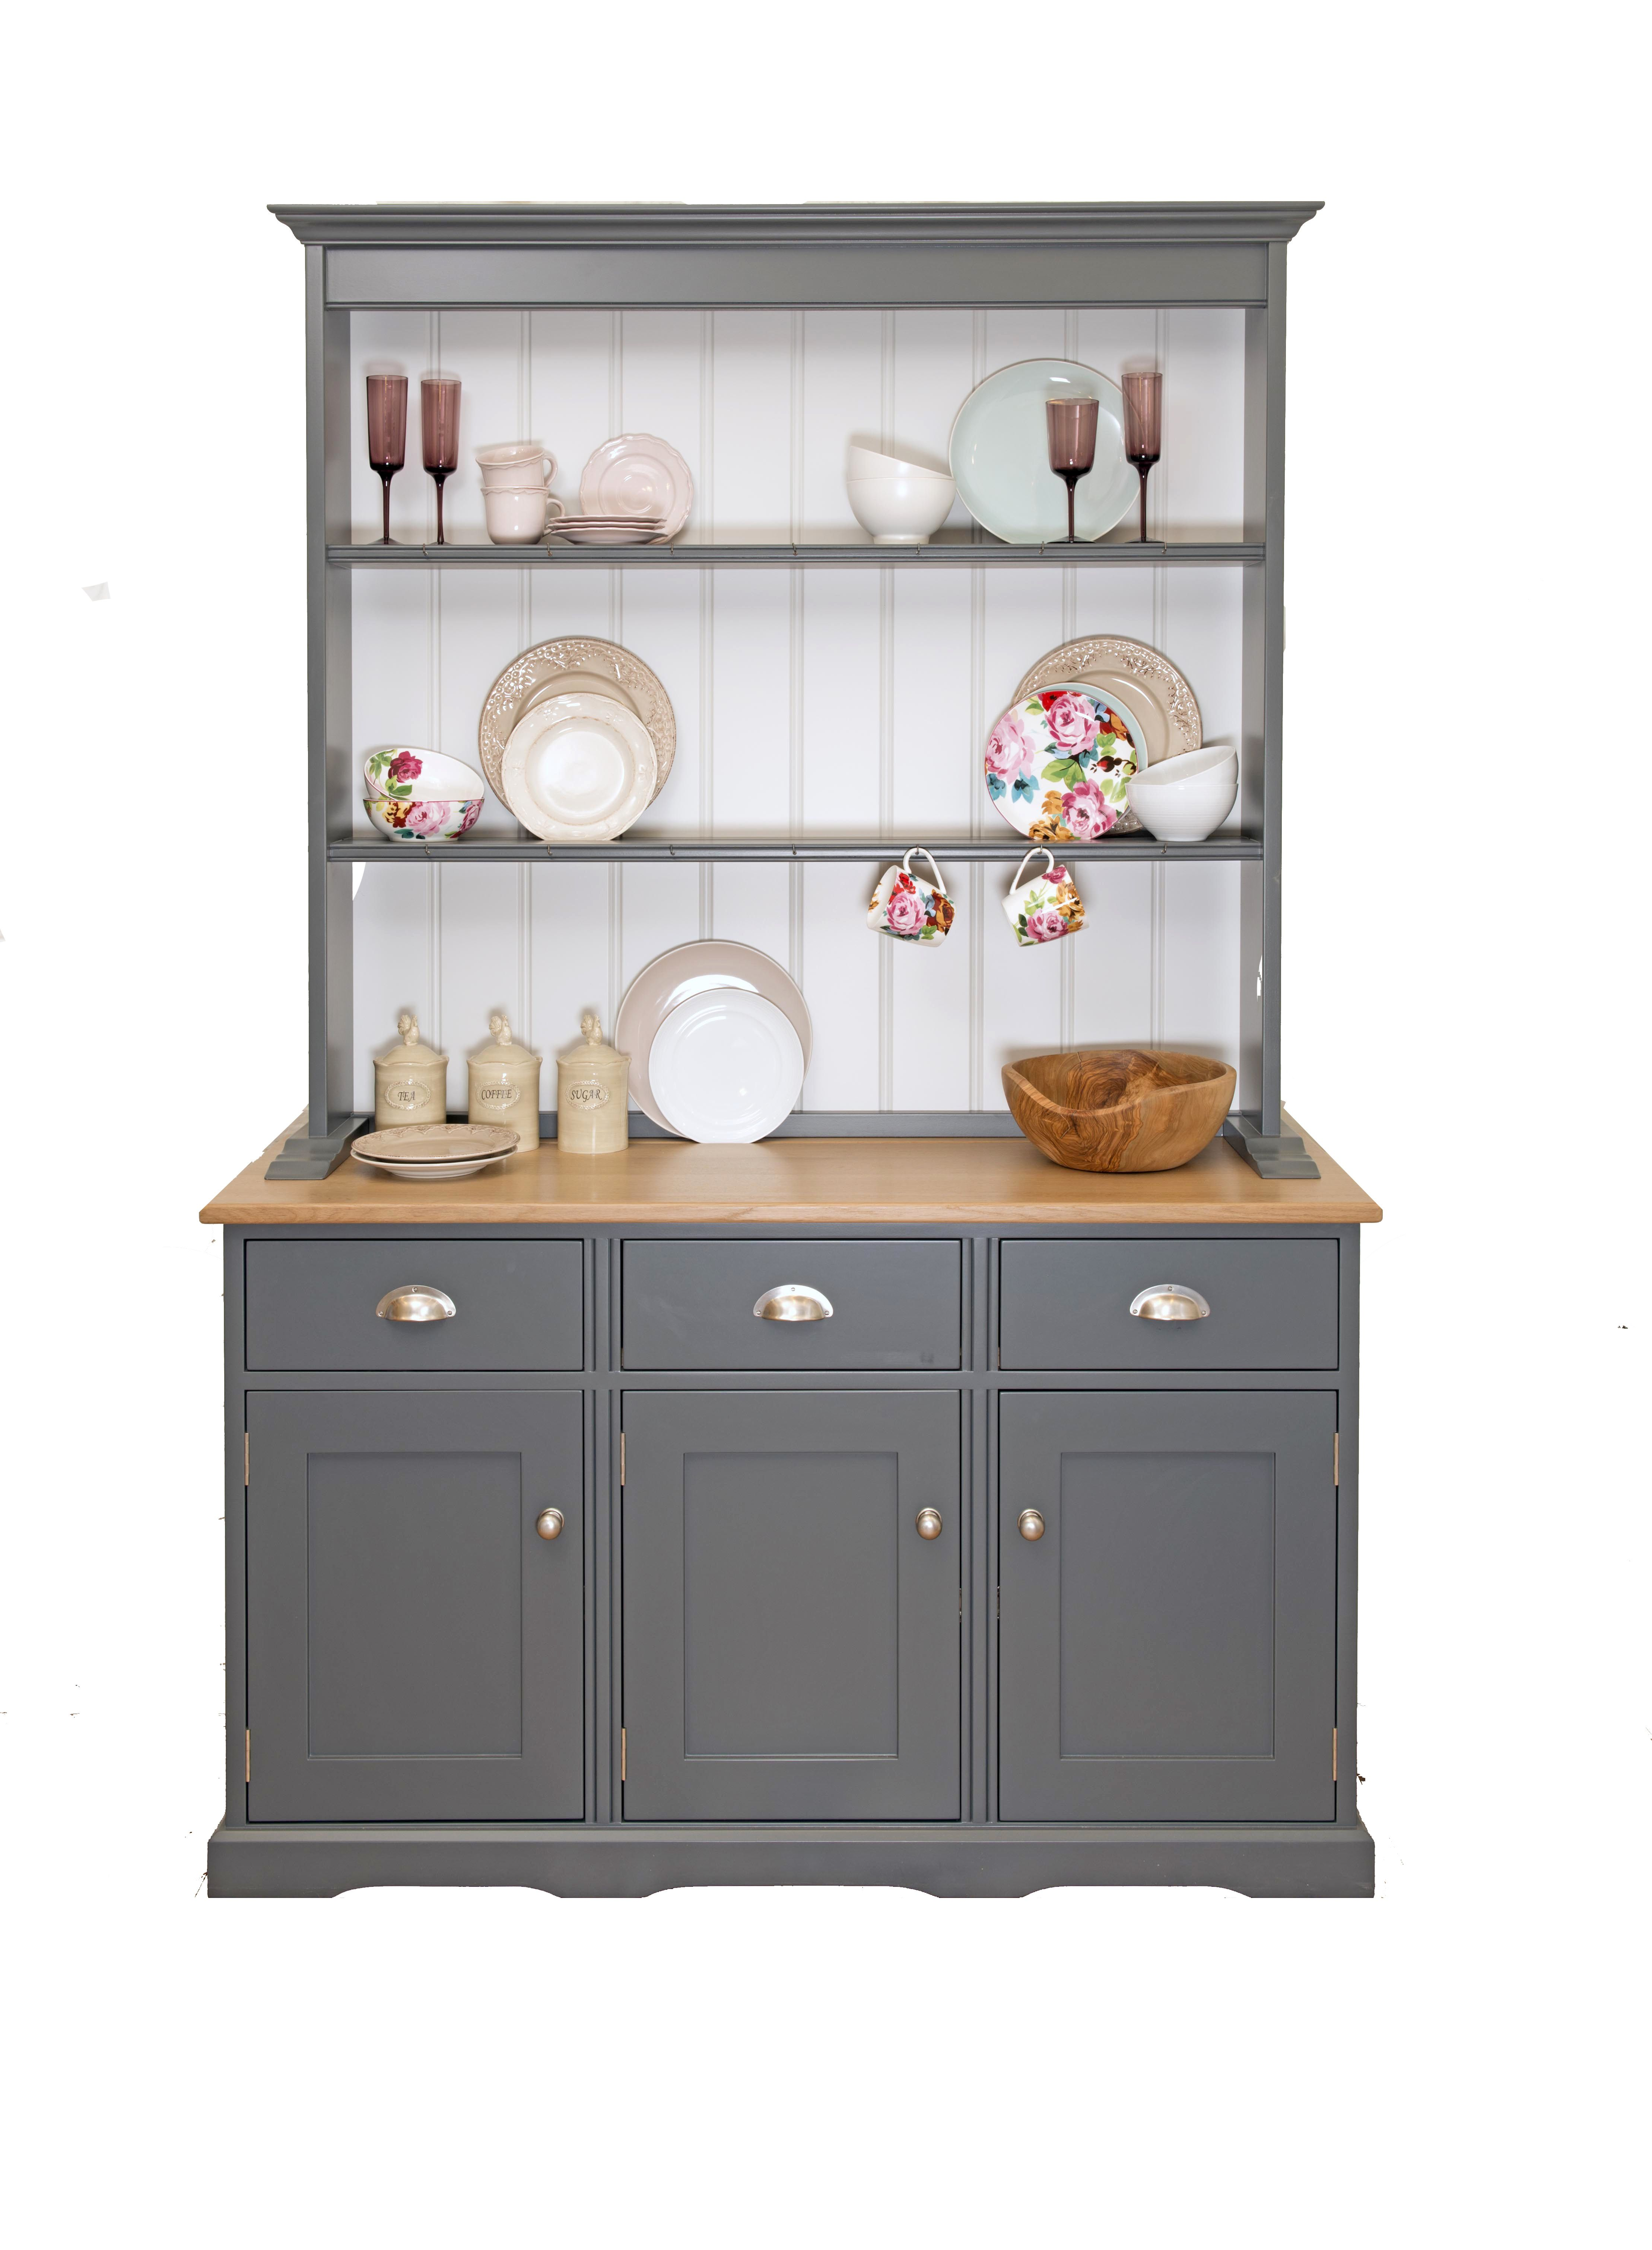 Our Medium Croft Dresser Has Been Painted In Stove Grey And Will Be A Great